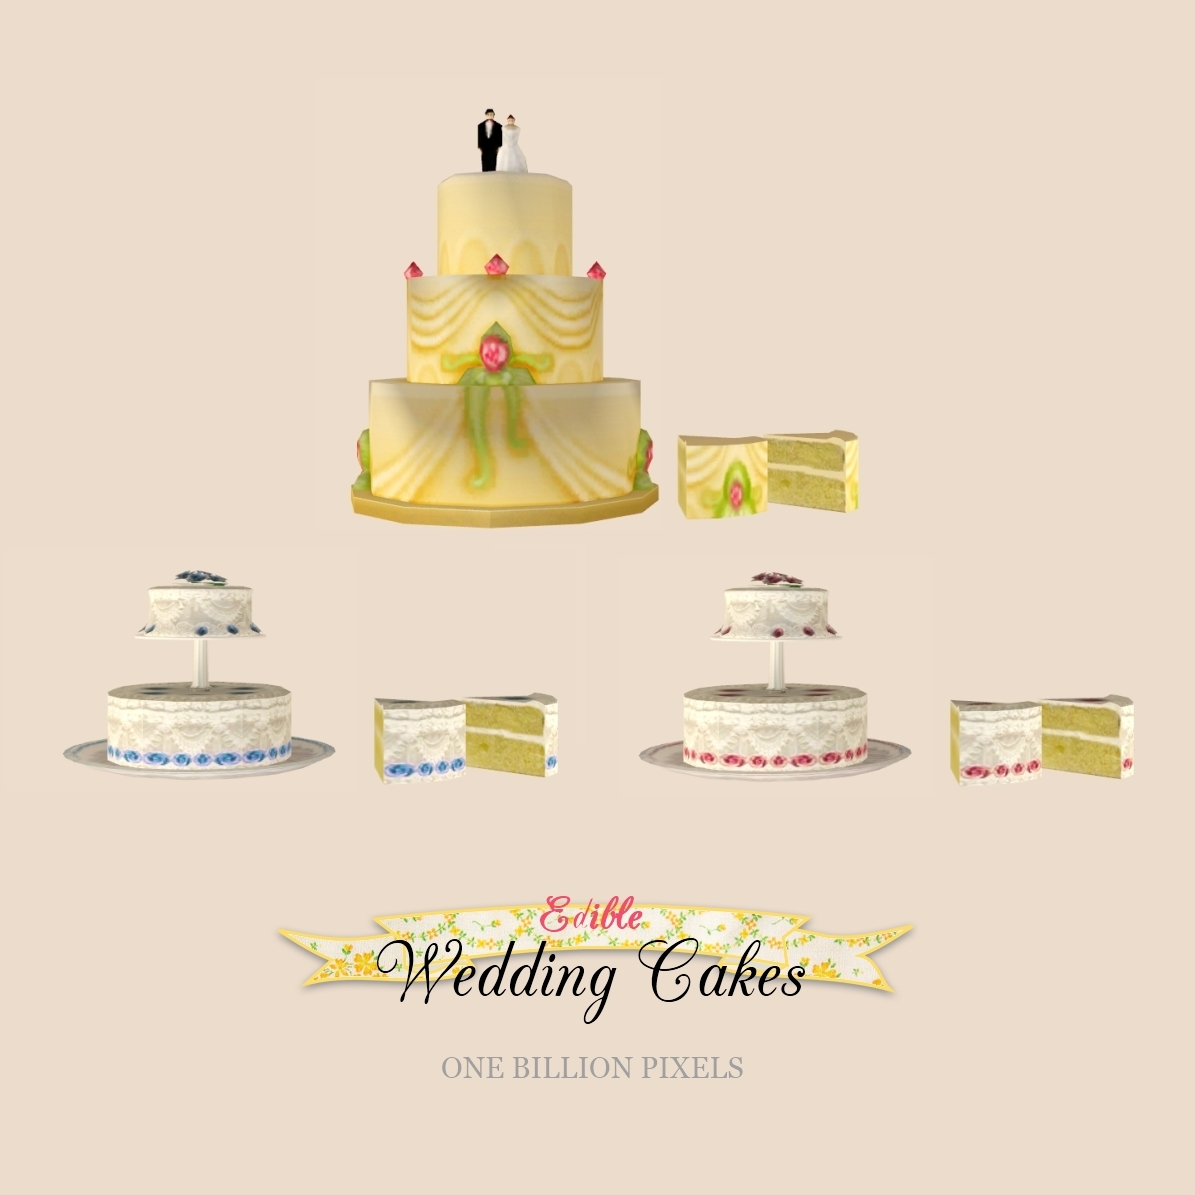 where is the wedding cake in sims 3 generations edible wedding cakes bonus one billion pixels 27146